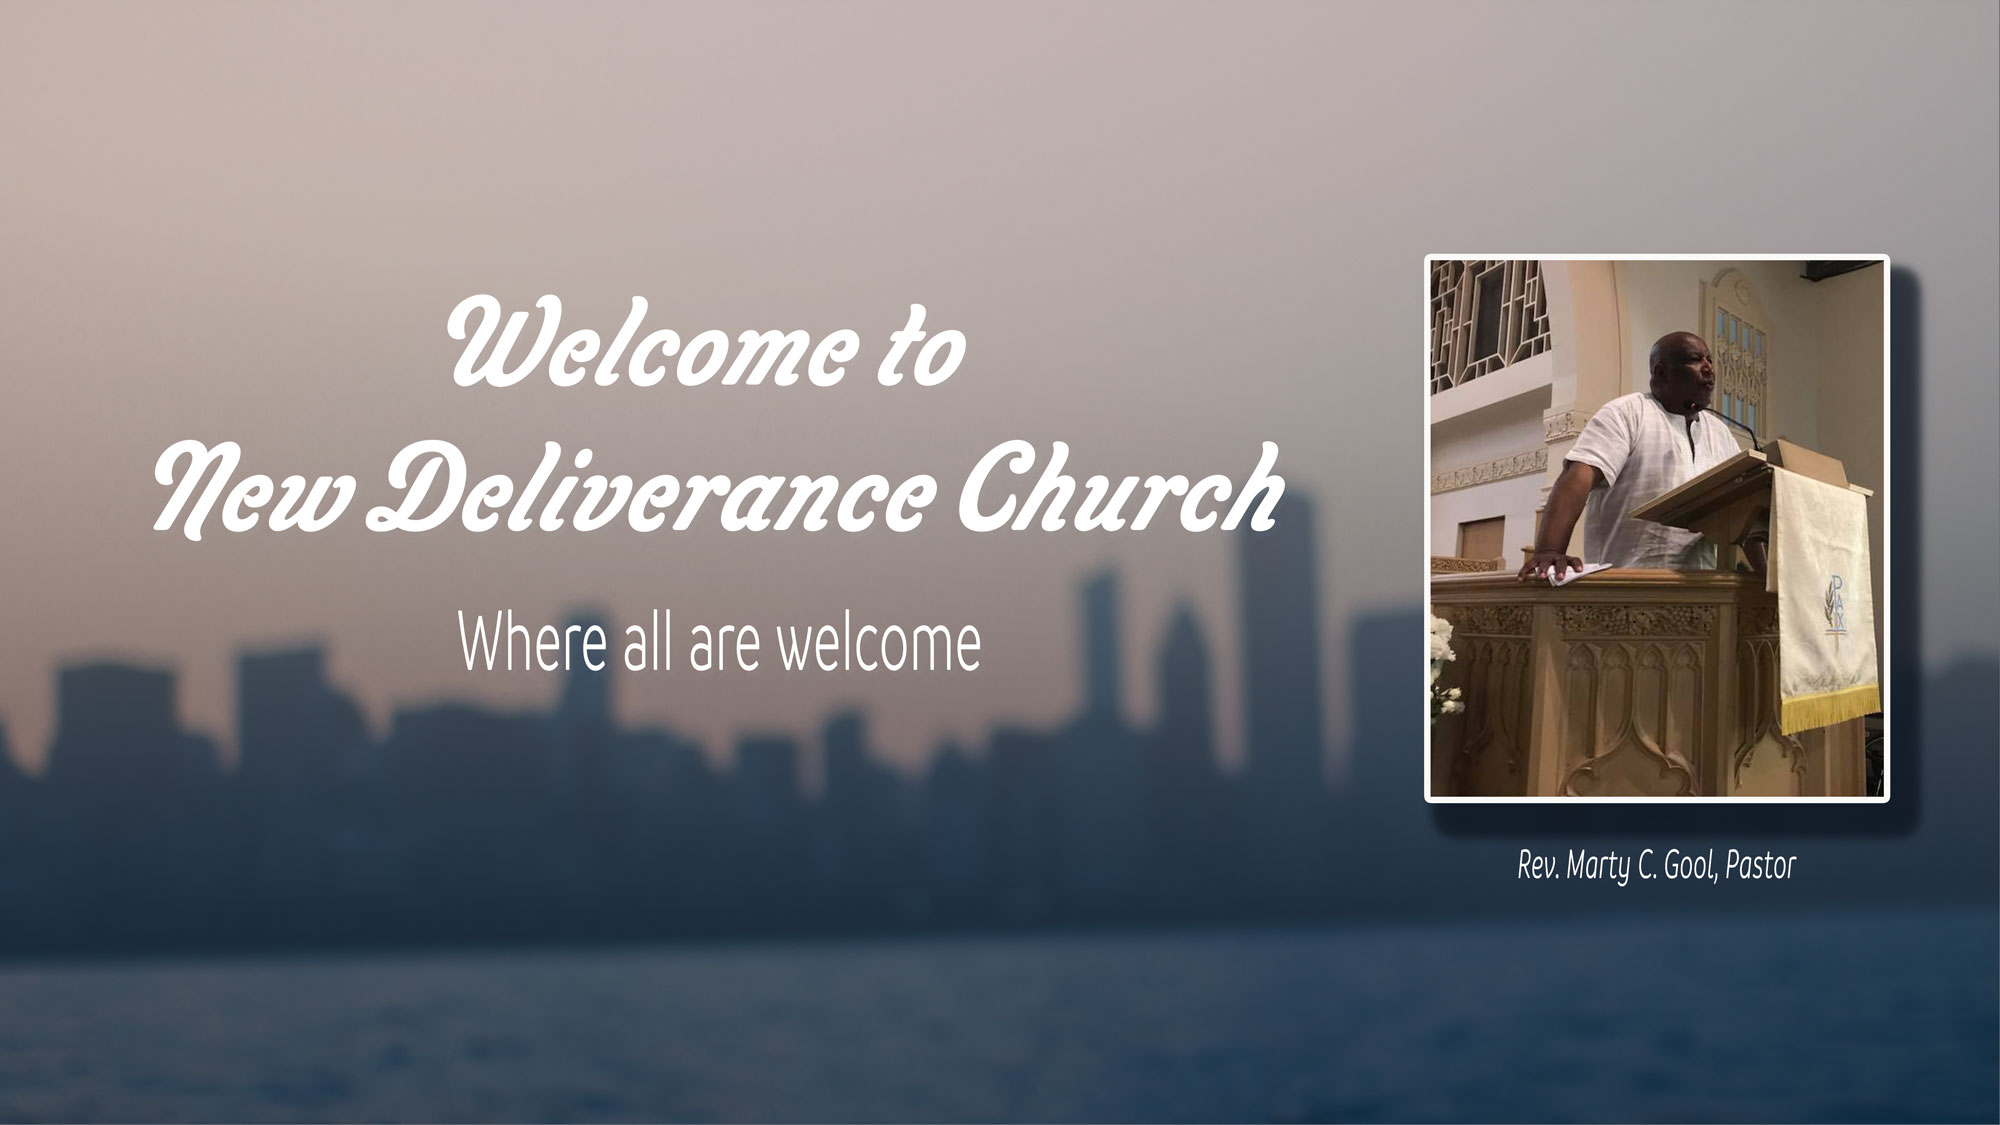 Welcome to New Deliverance Church